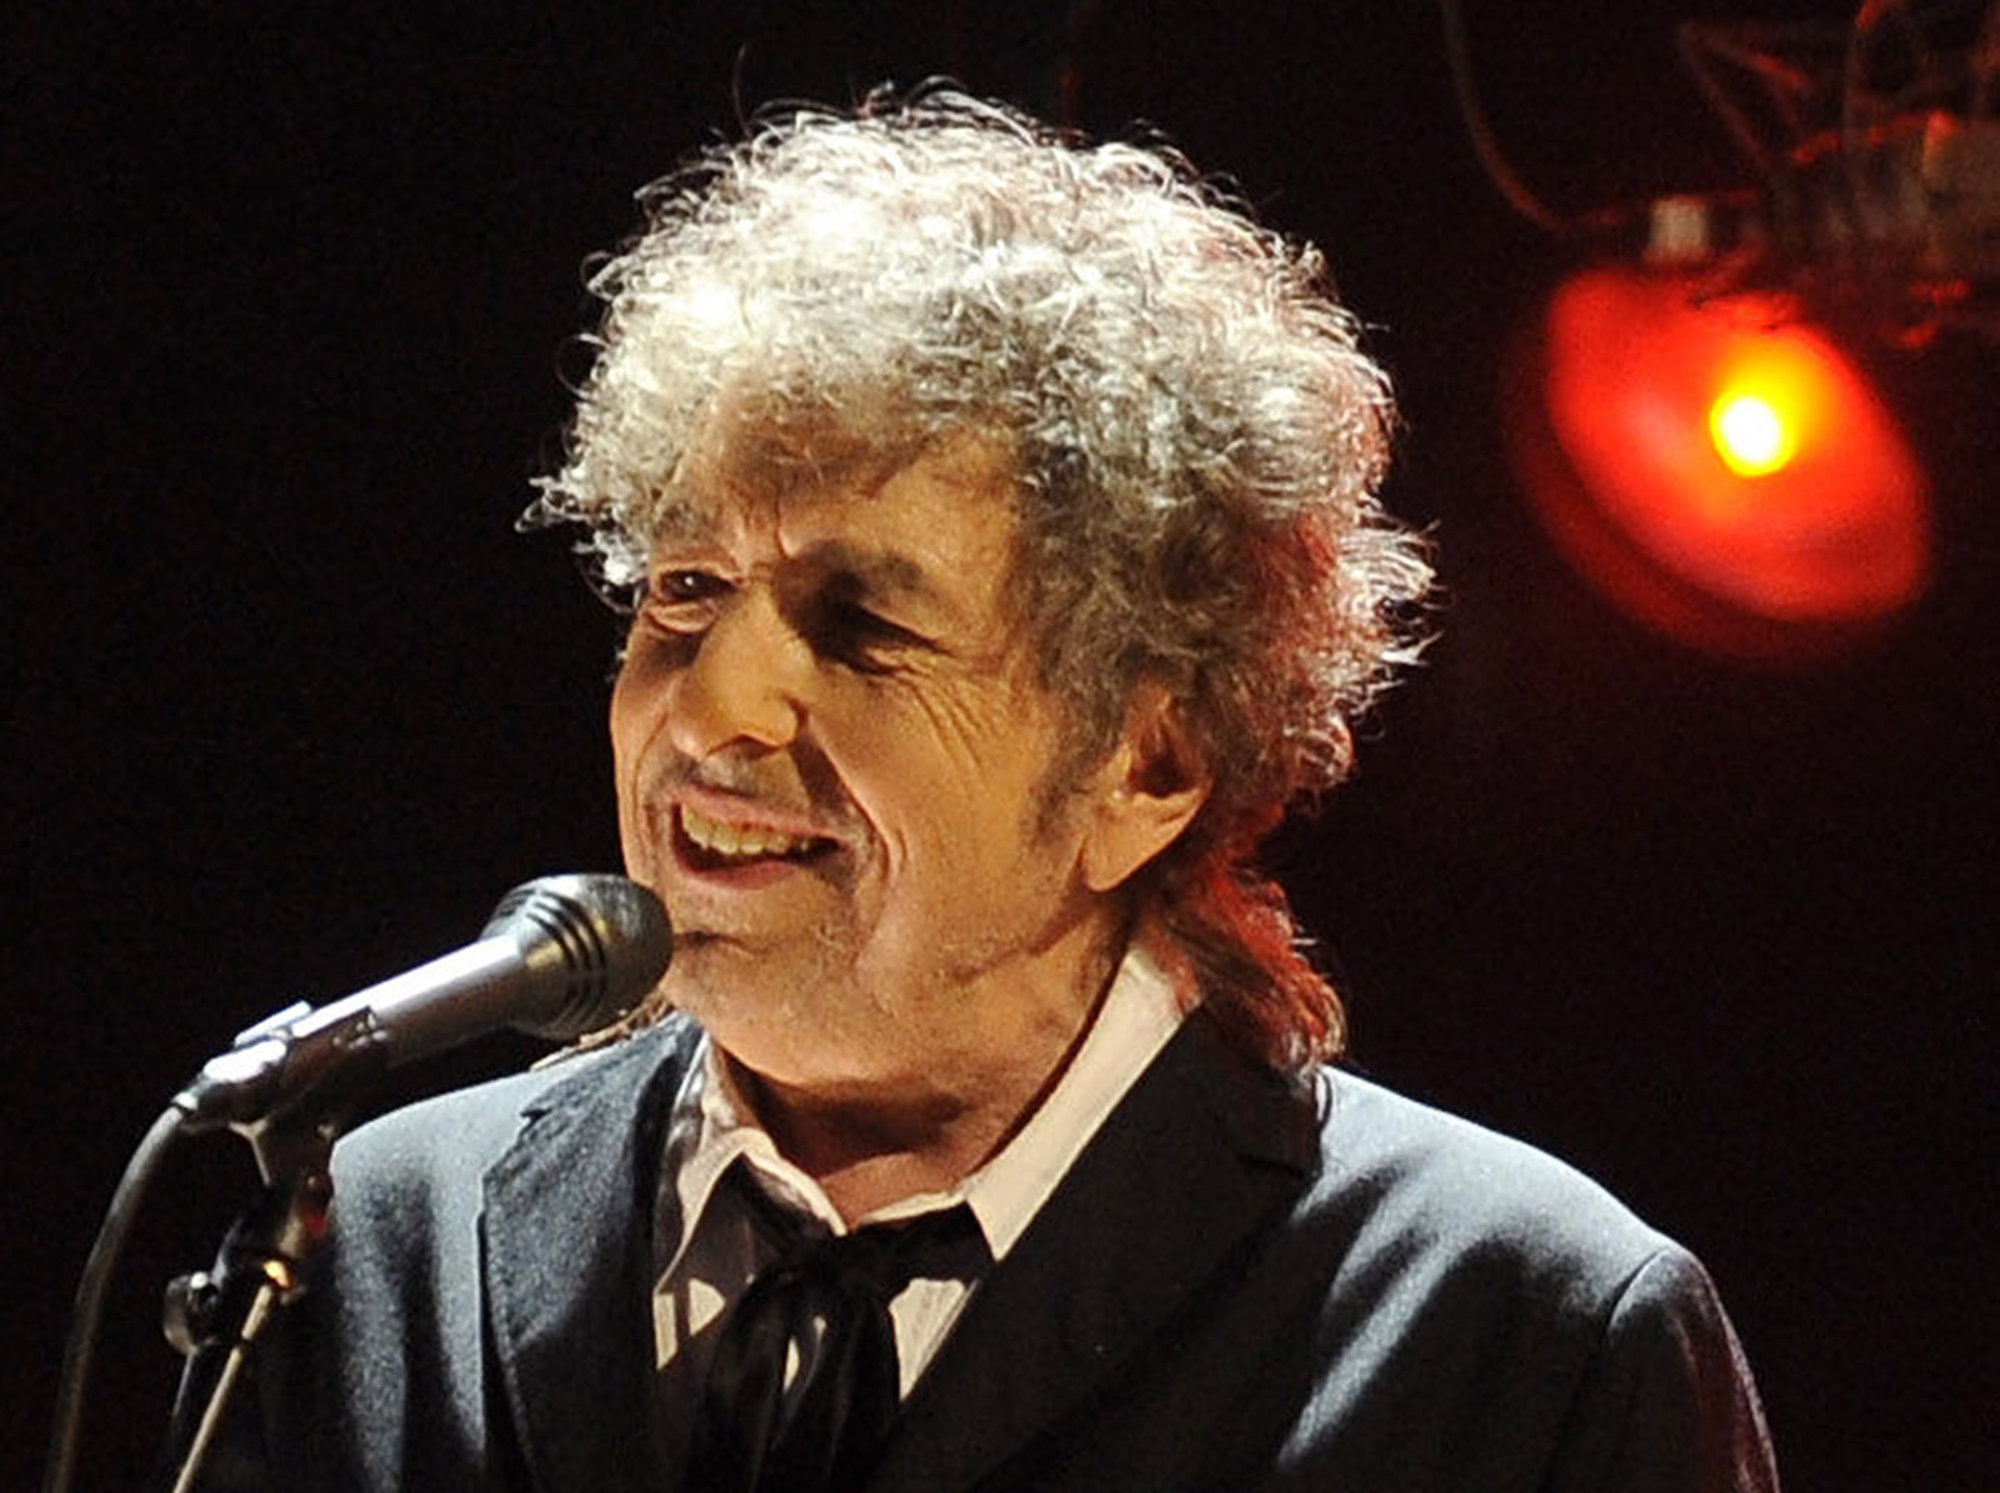 bob-dylan-finally-accepts-the-nobel-prize-after-more-than-15-days-of-announcement